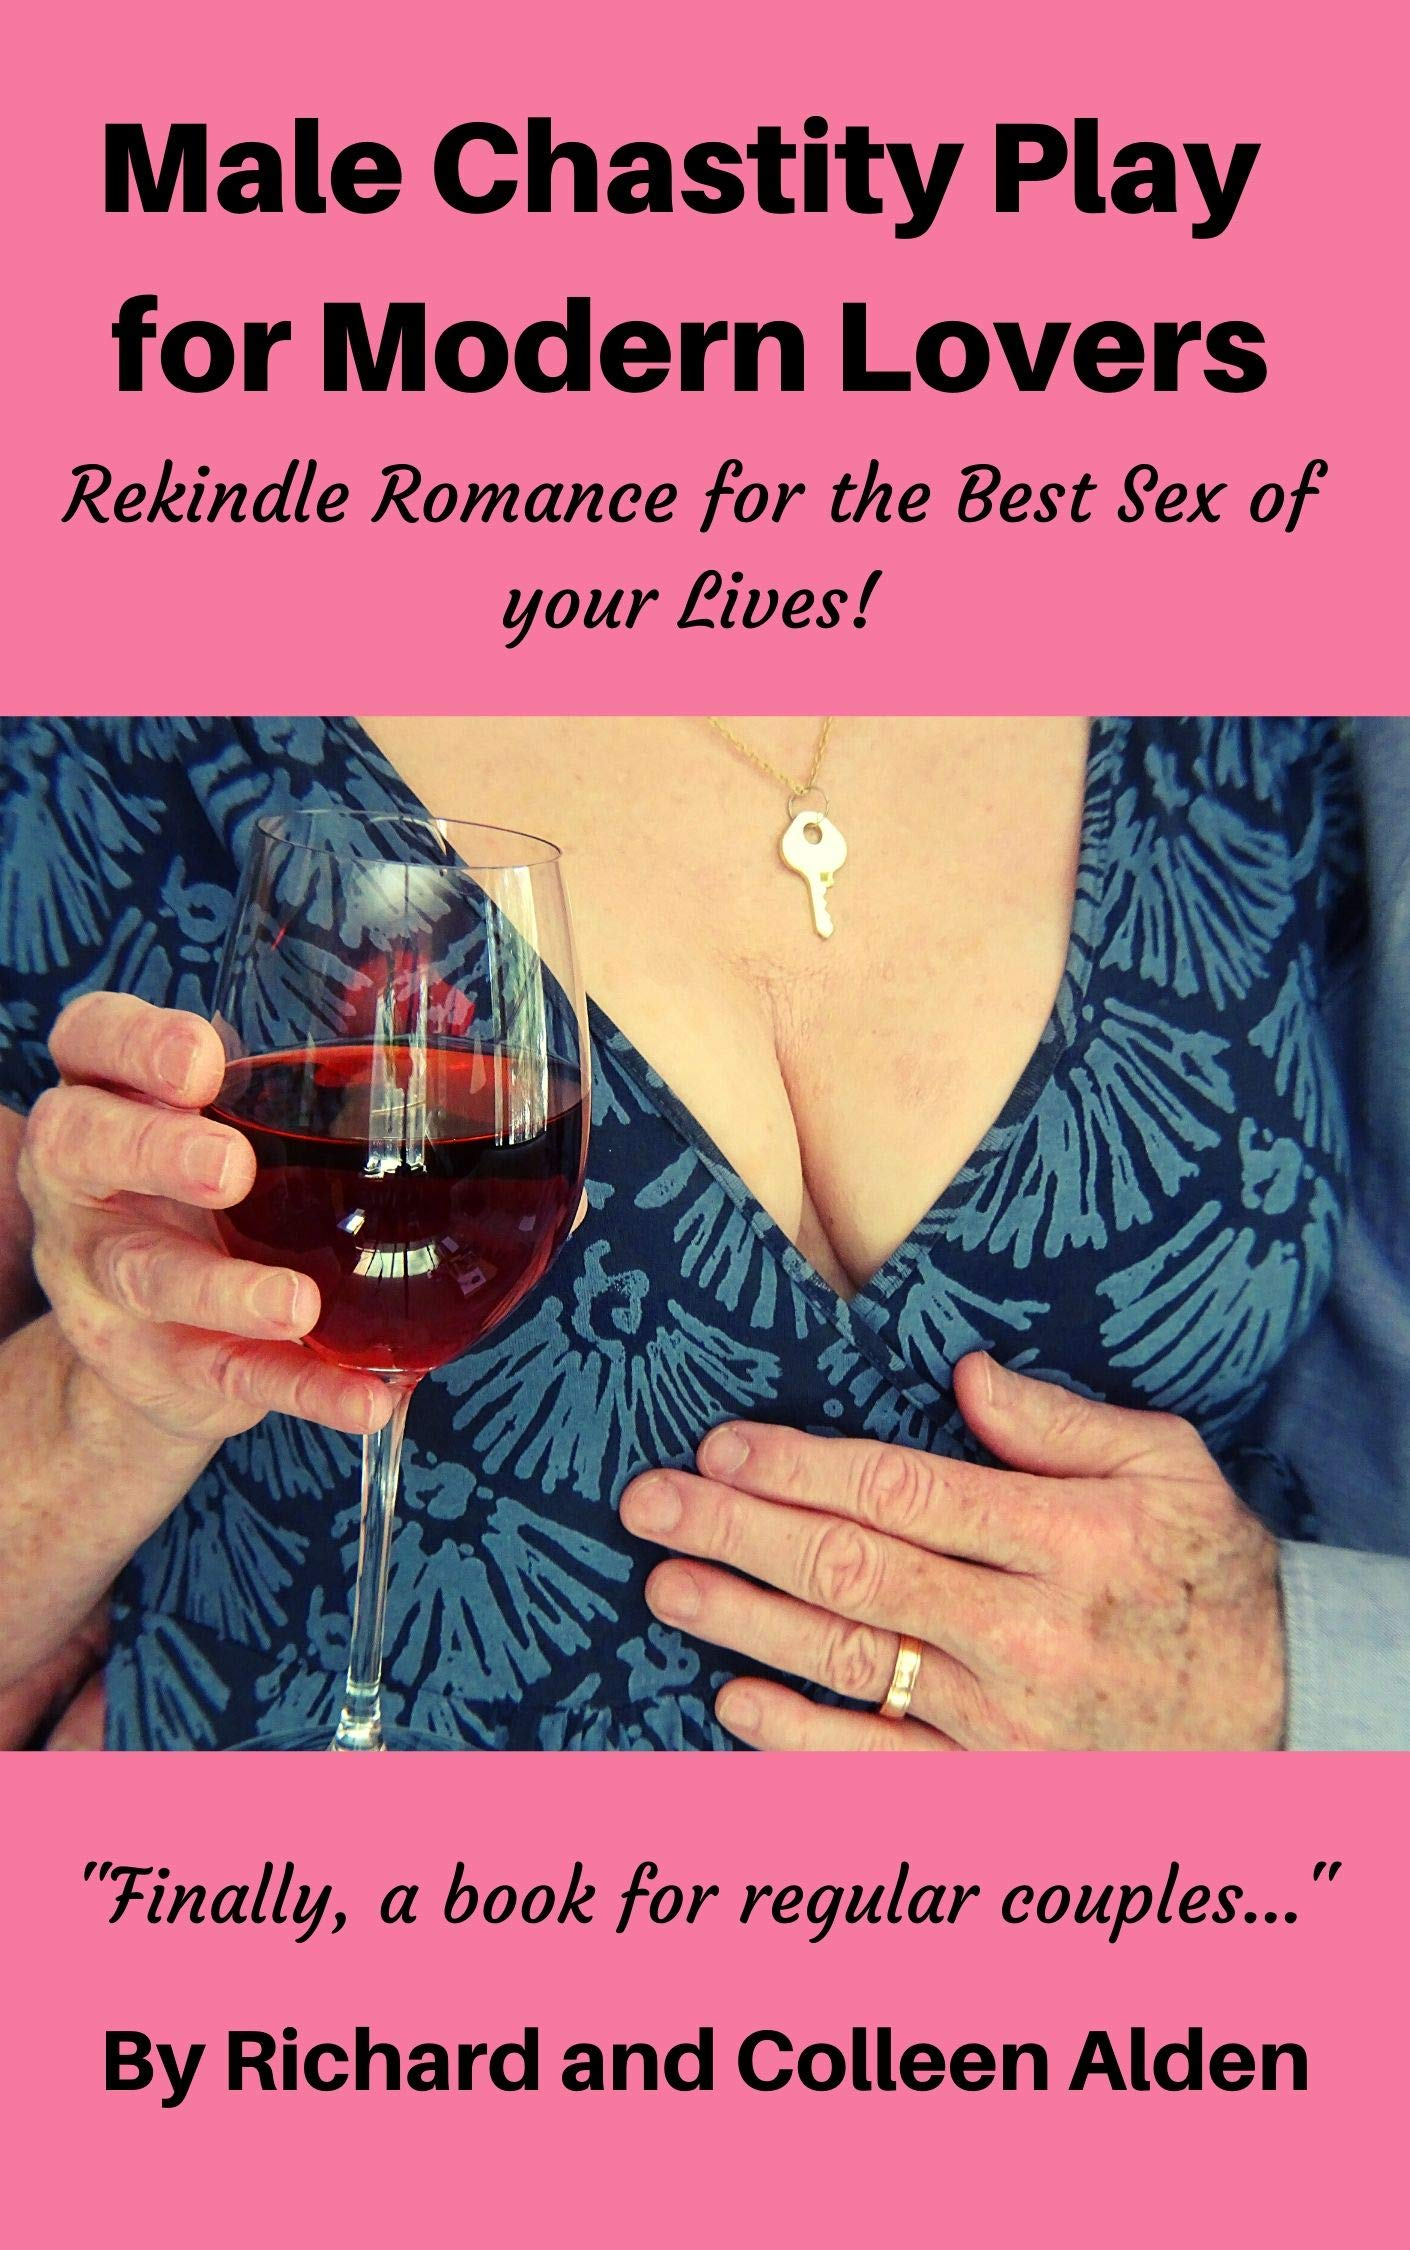 Male Chastity Play for Modern Lovers: Rekindle Romance for the Best Sex of Your Lives!